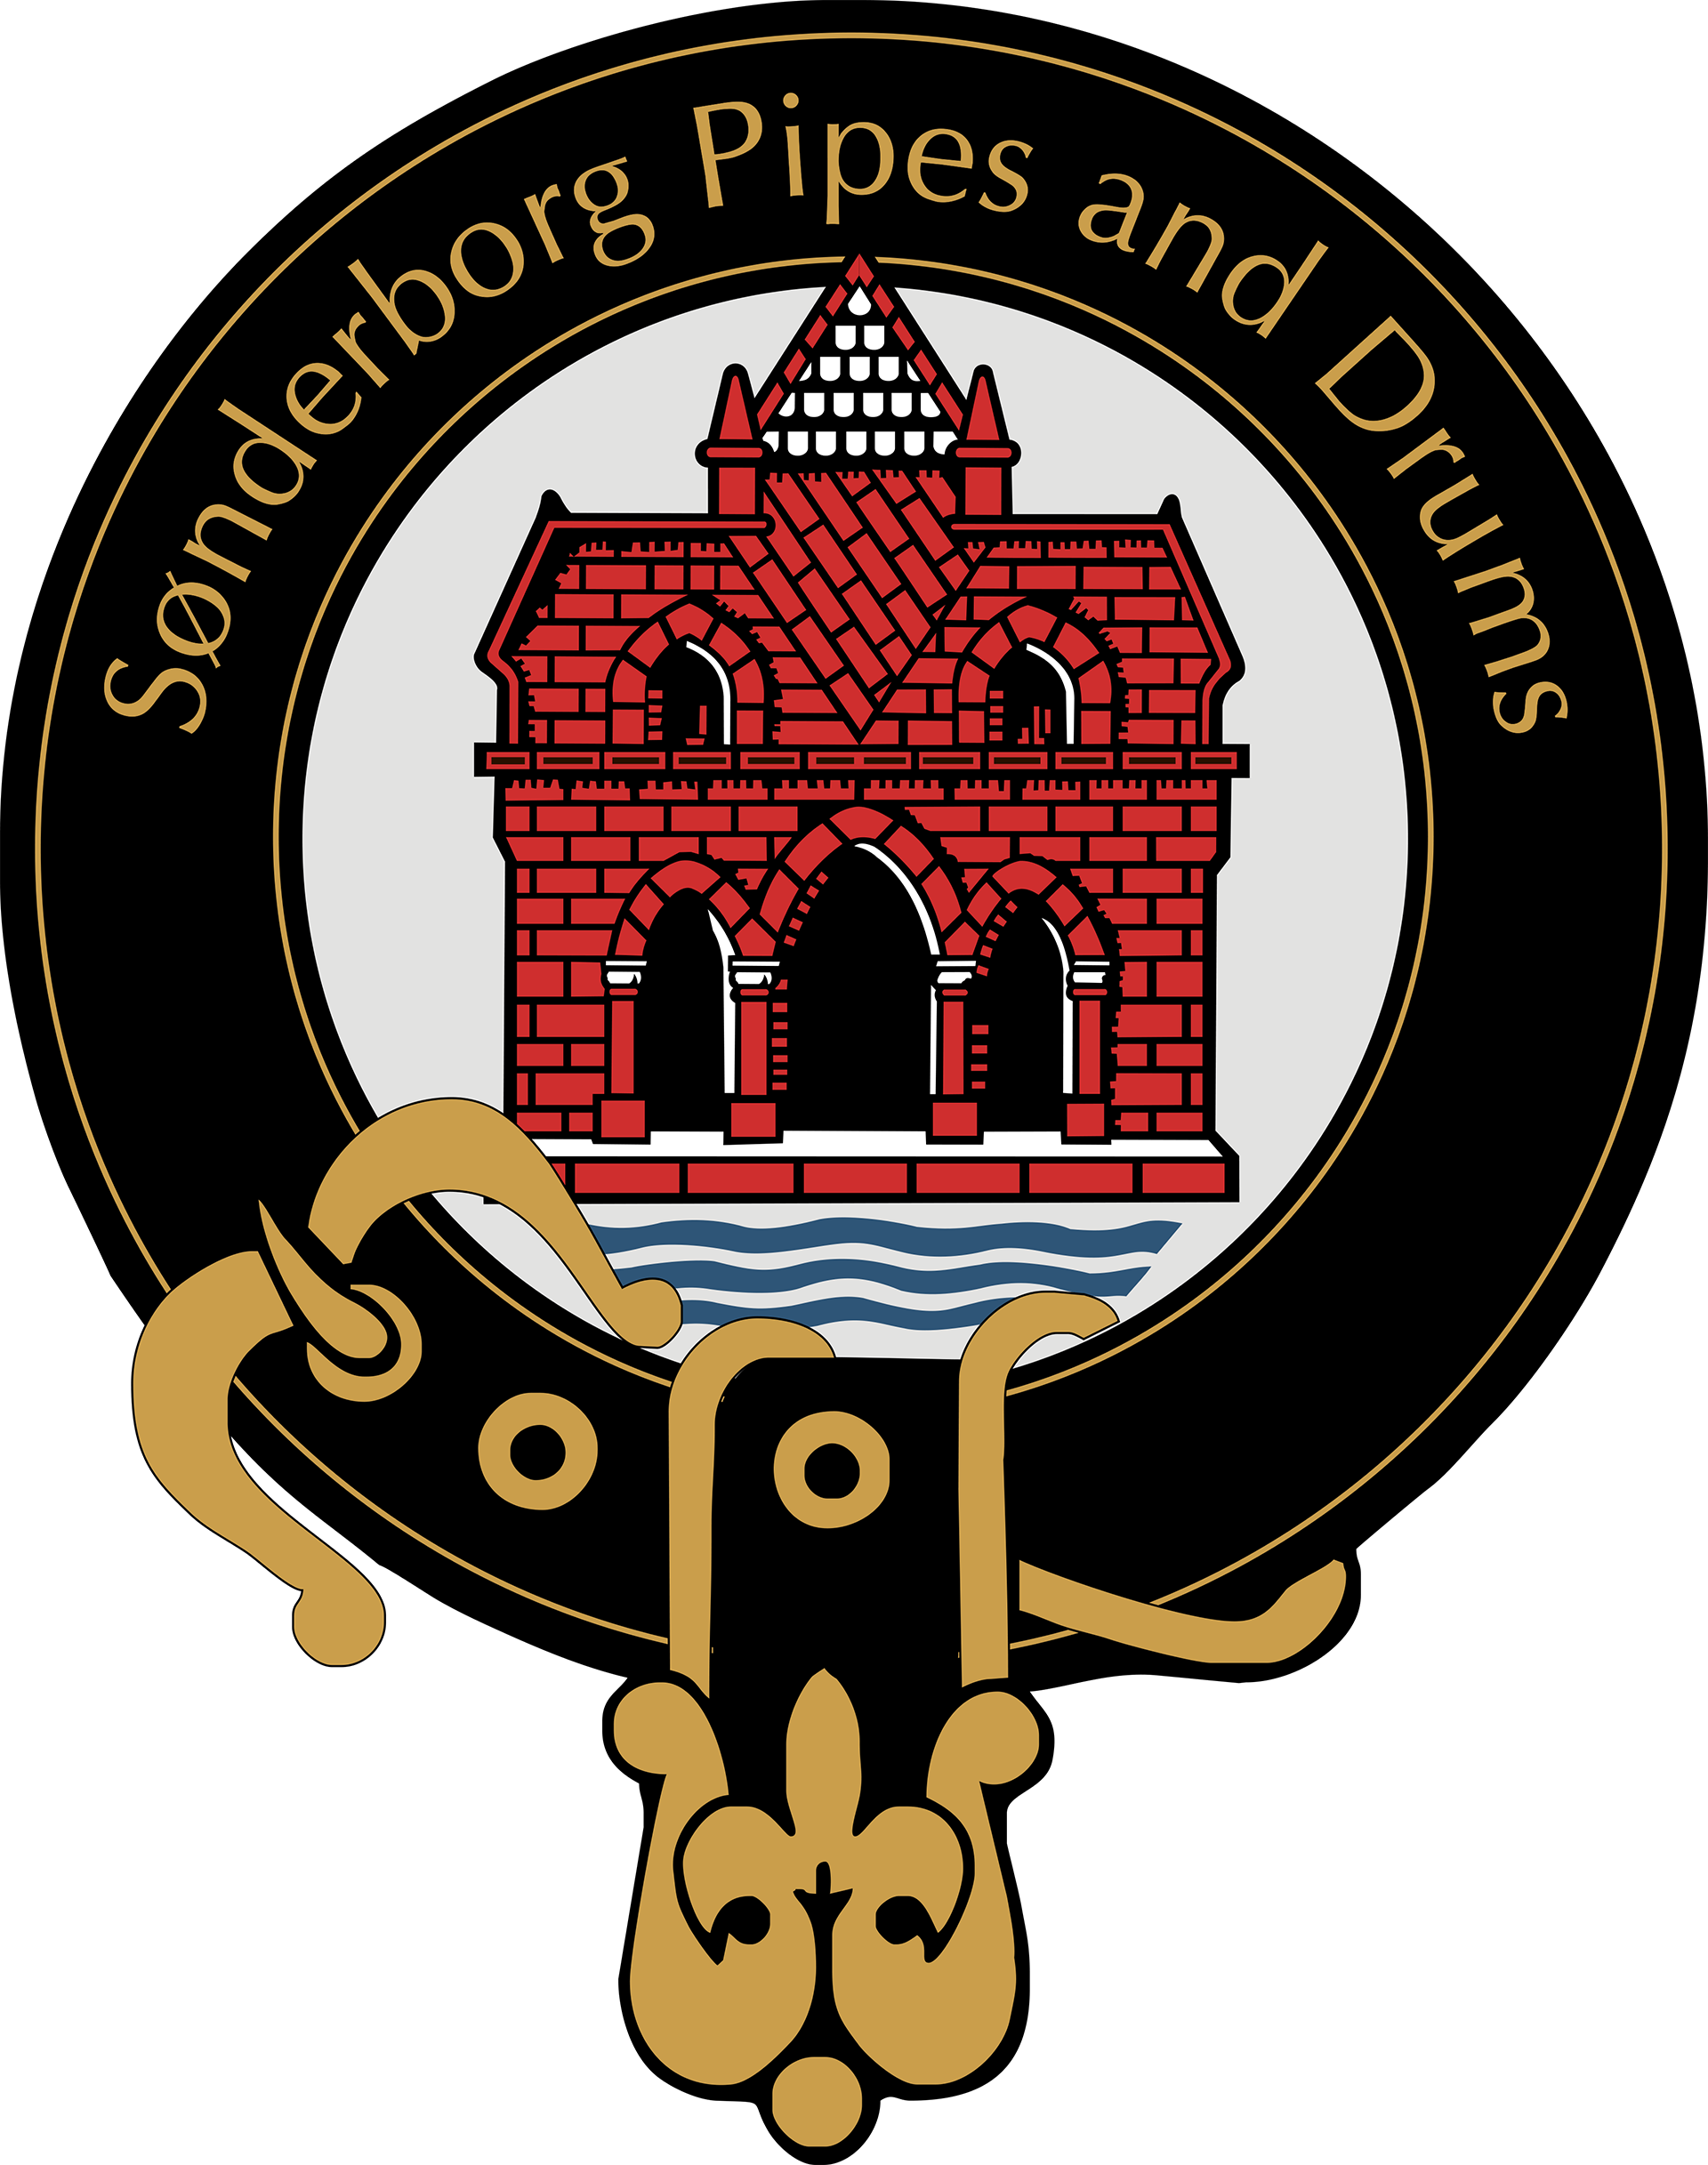 Sønderborg Pipes and Drums Logo